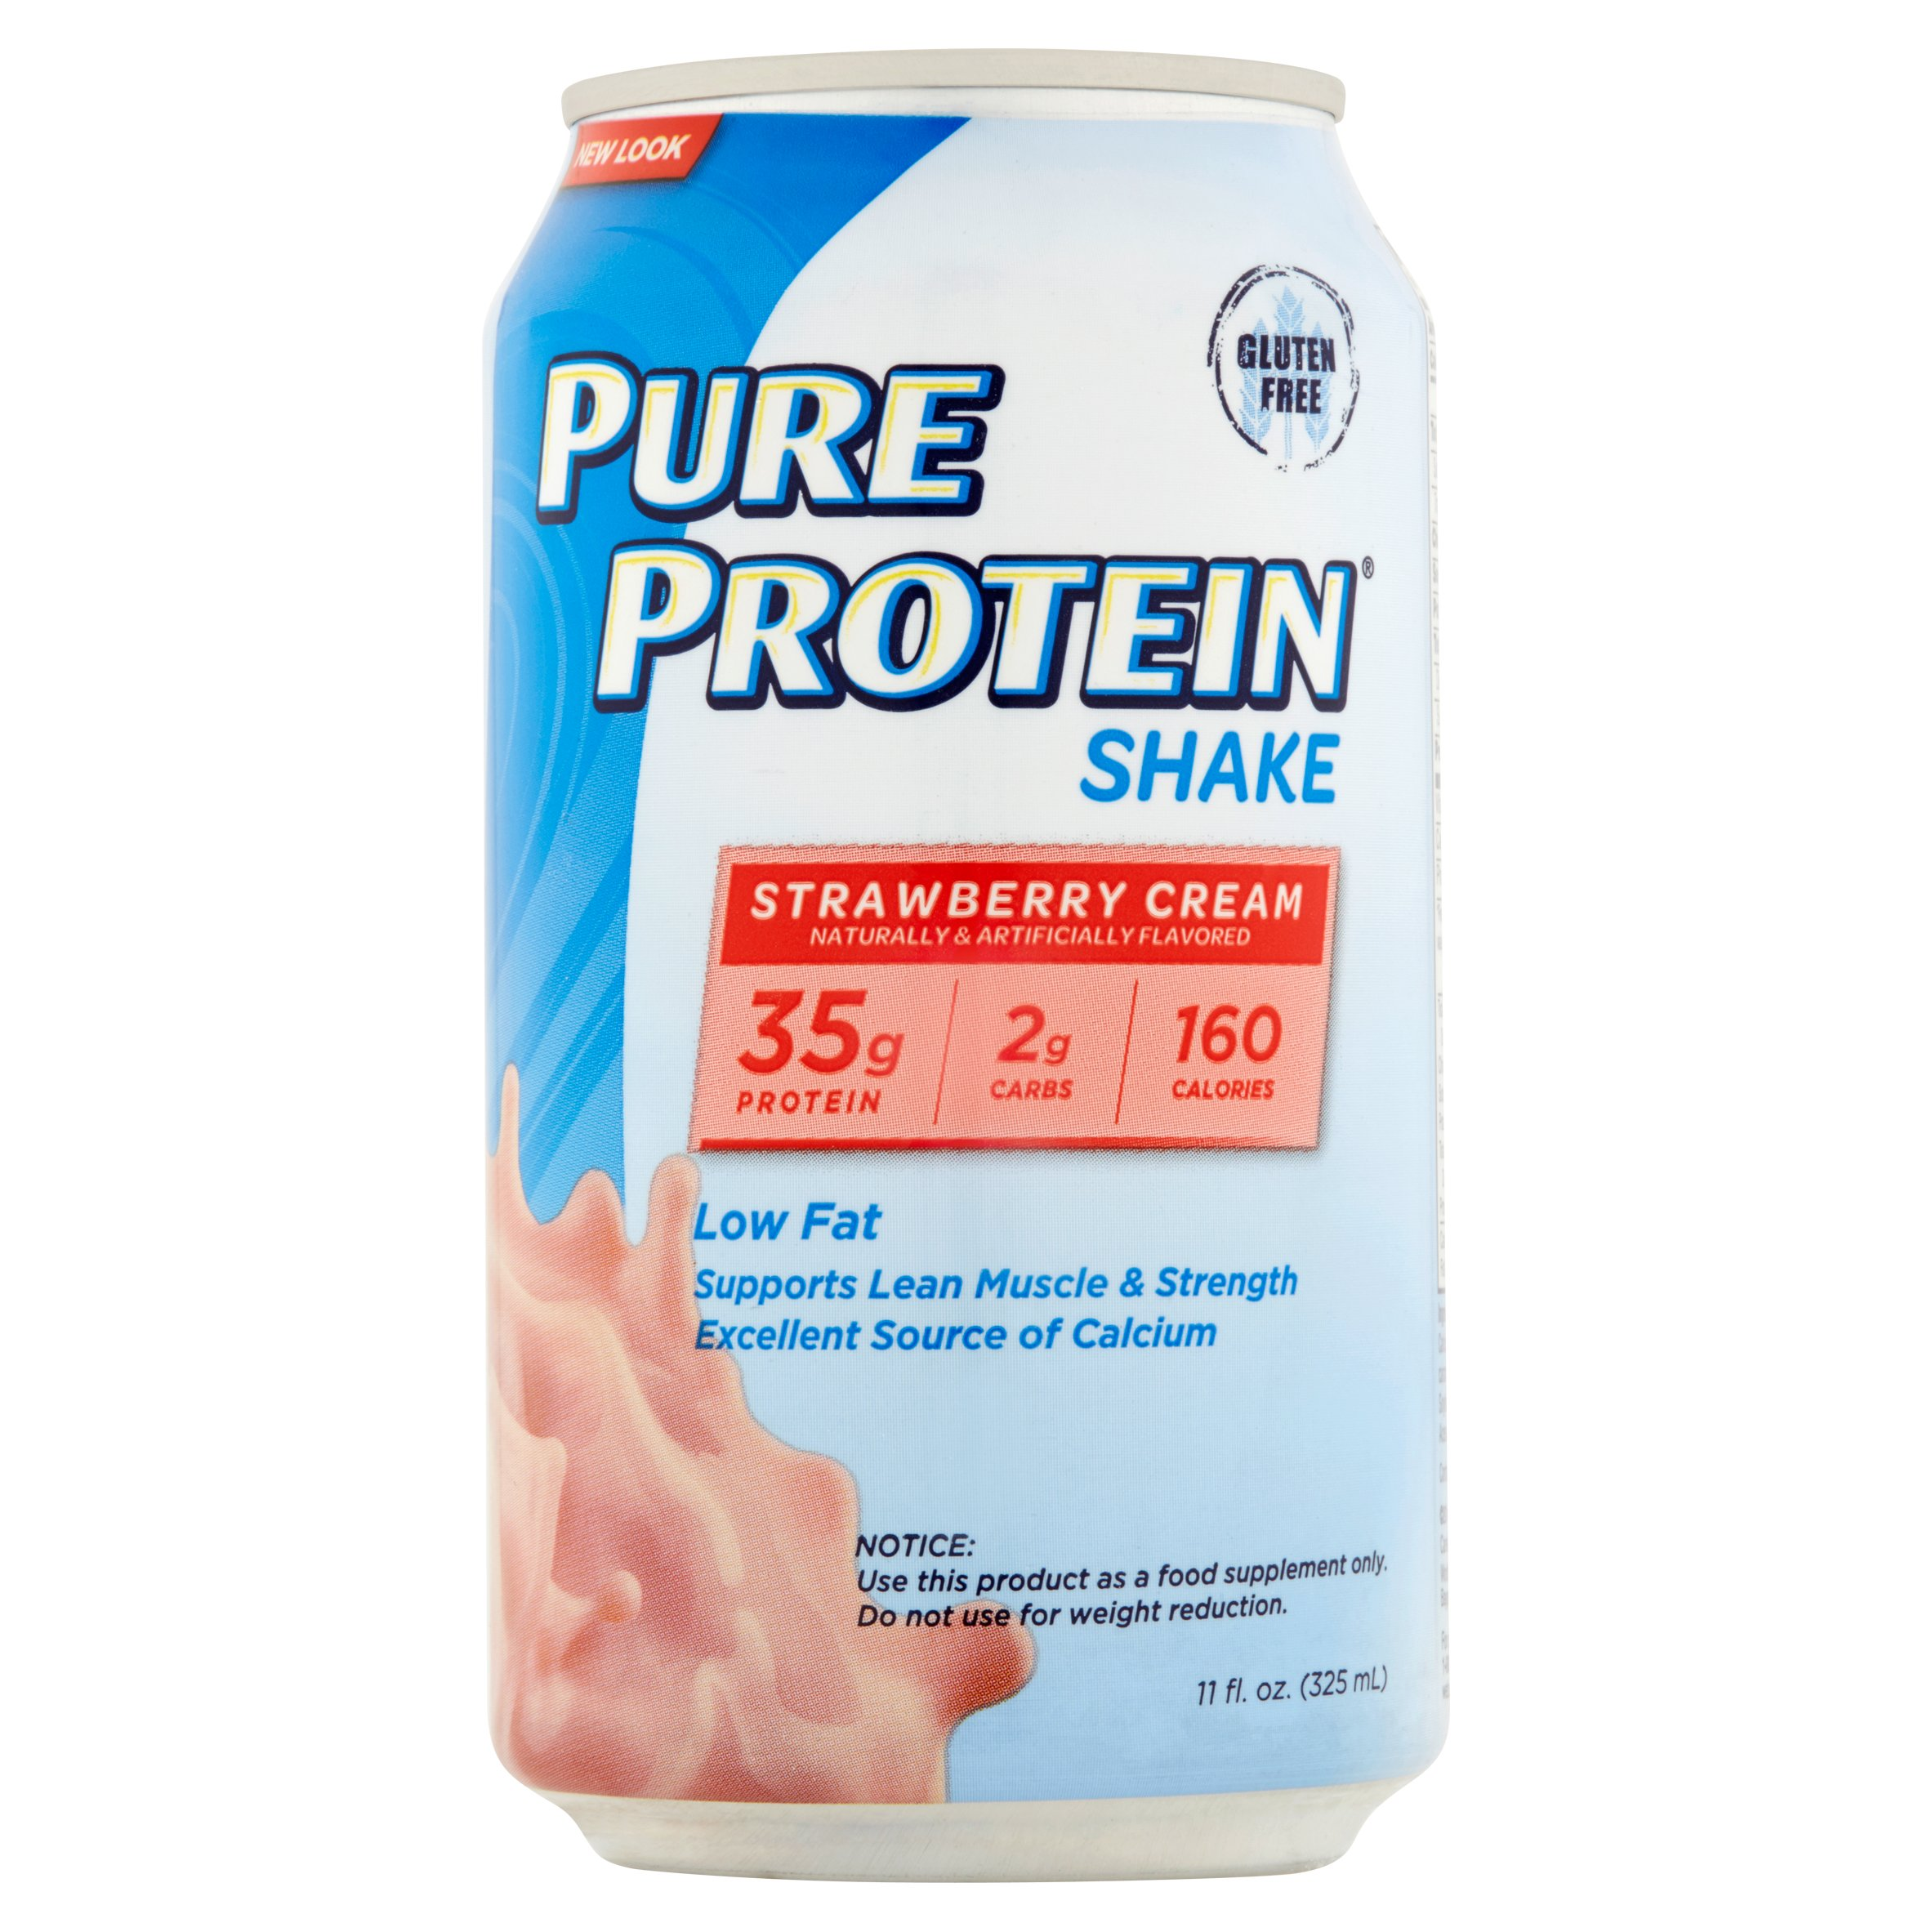 Pure Protein Strawberry Cream Protein Shakes 11 fl oz 12